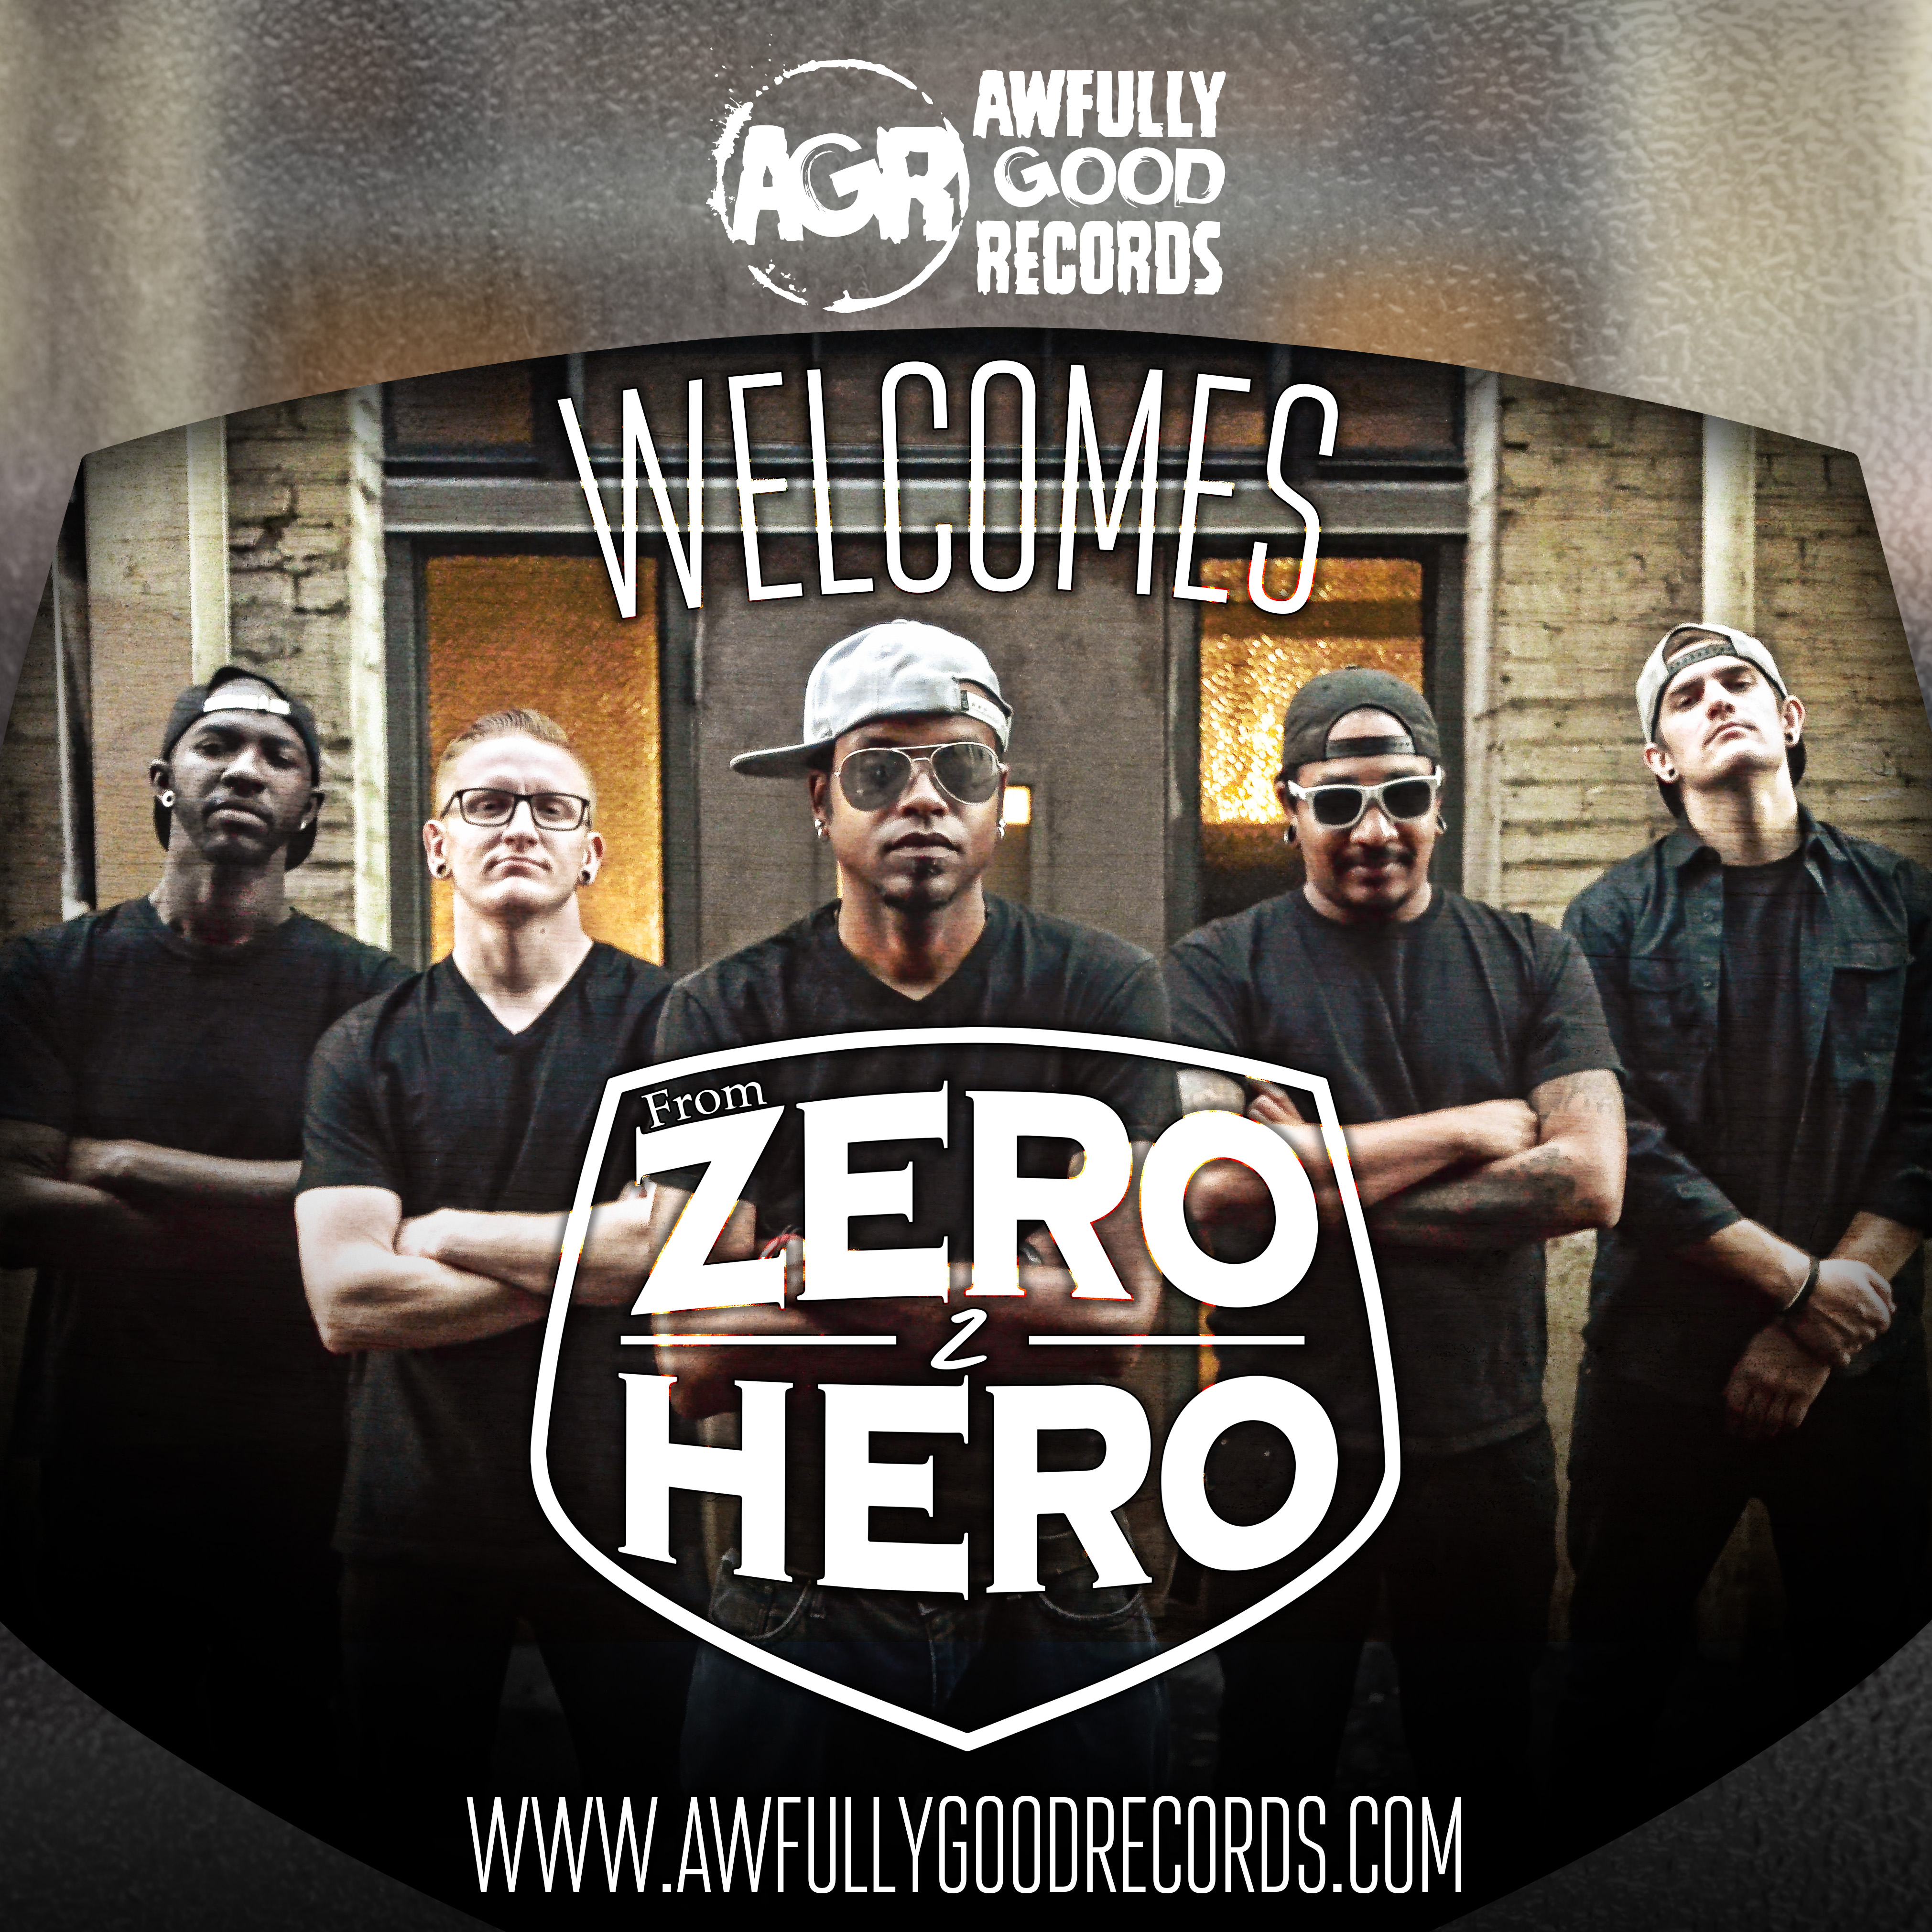 AGR Welcomes From Zero 2 Hero